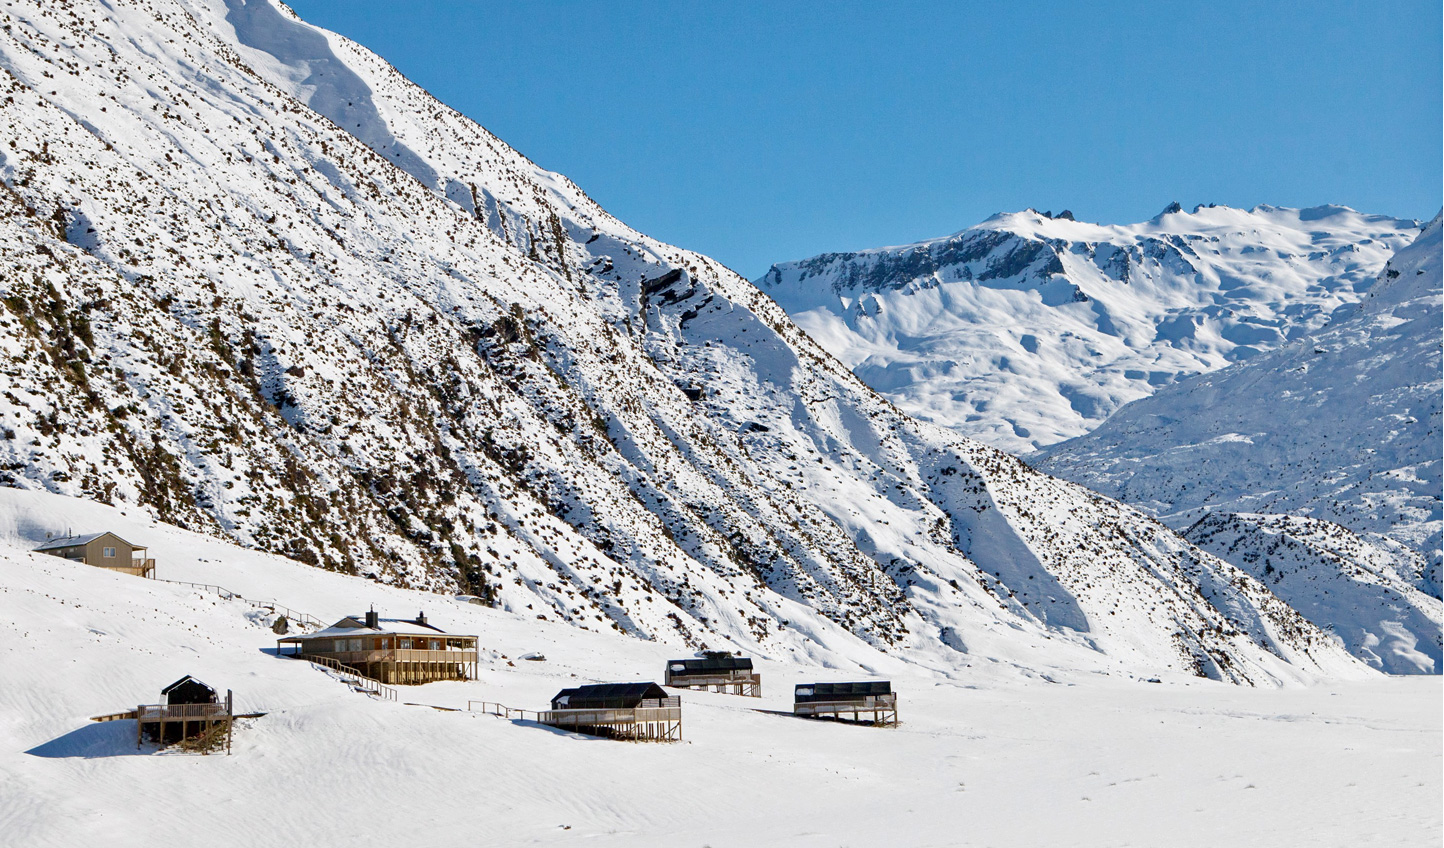 The Minaret Station sits amongst the snowy Southern Alps